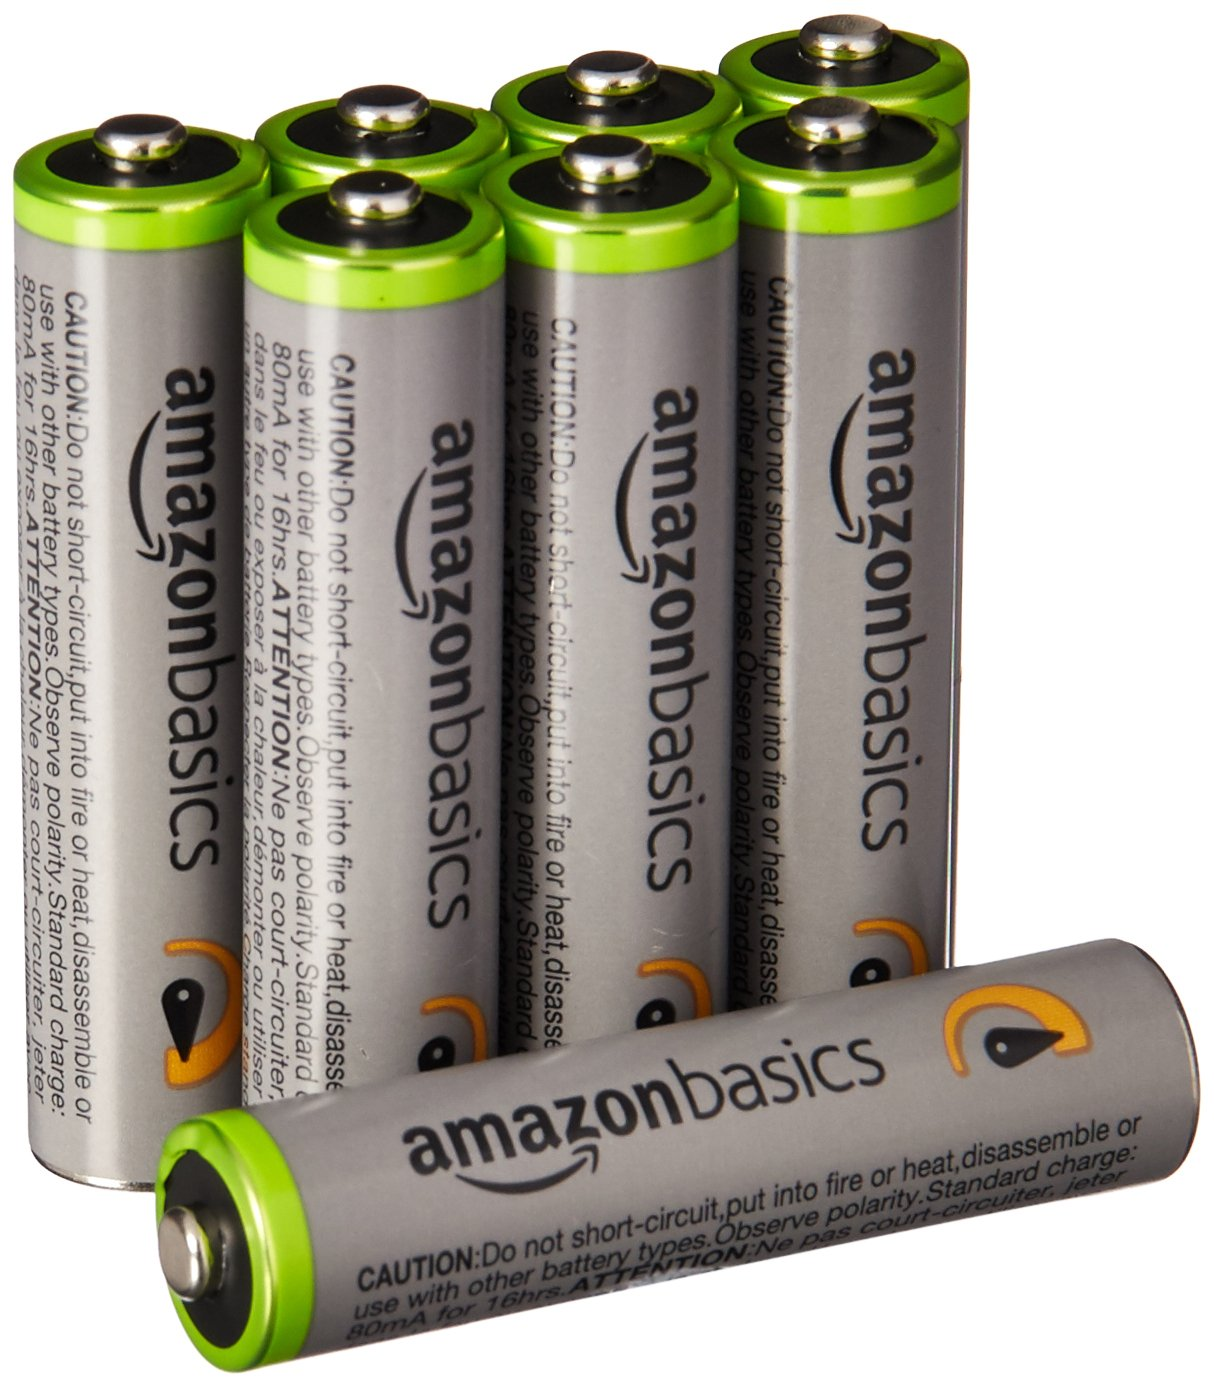 Best Rated In Camera Camcorder Batteries Helpful Customer Charger Battery Lithium Variable Current Up To 2a By L200 Amazonbasics Aaa High Capacity Rechargeable 8 Pack Pre Charged